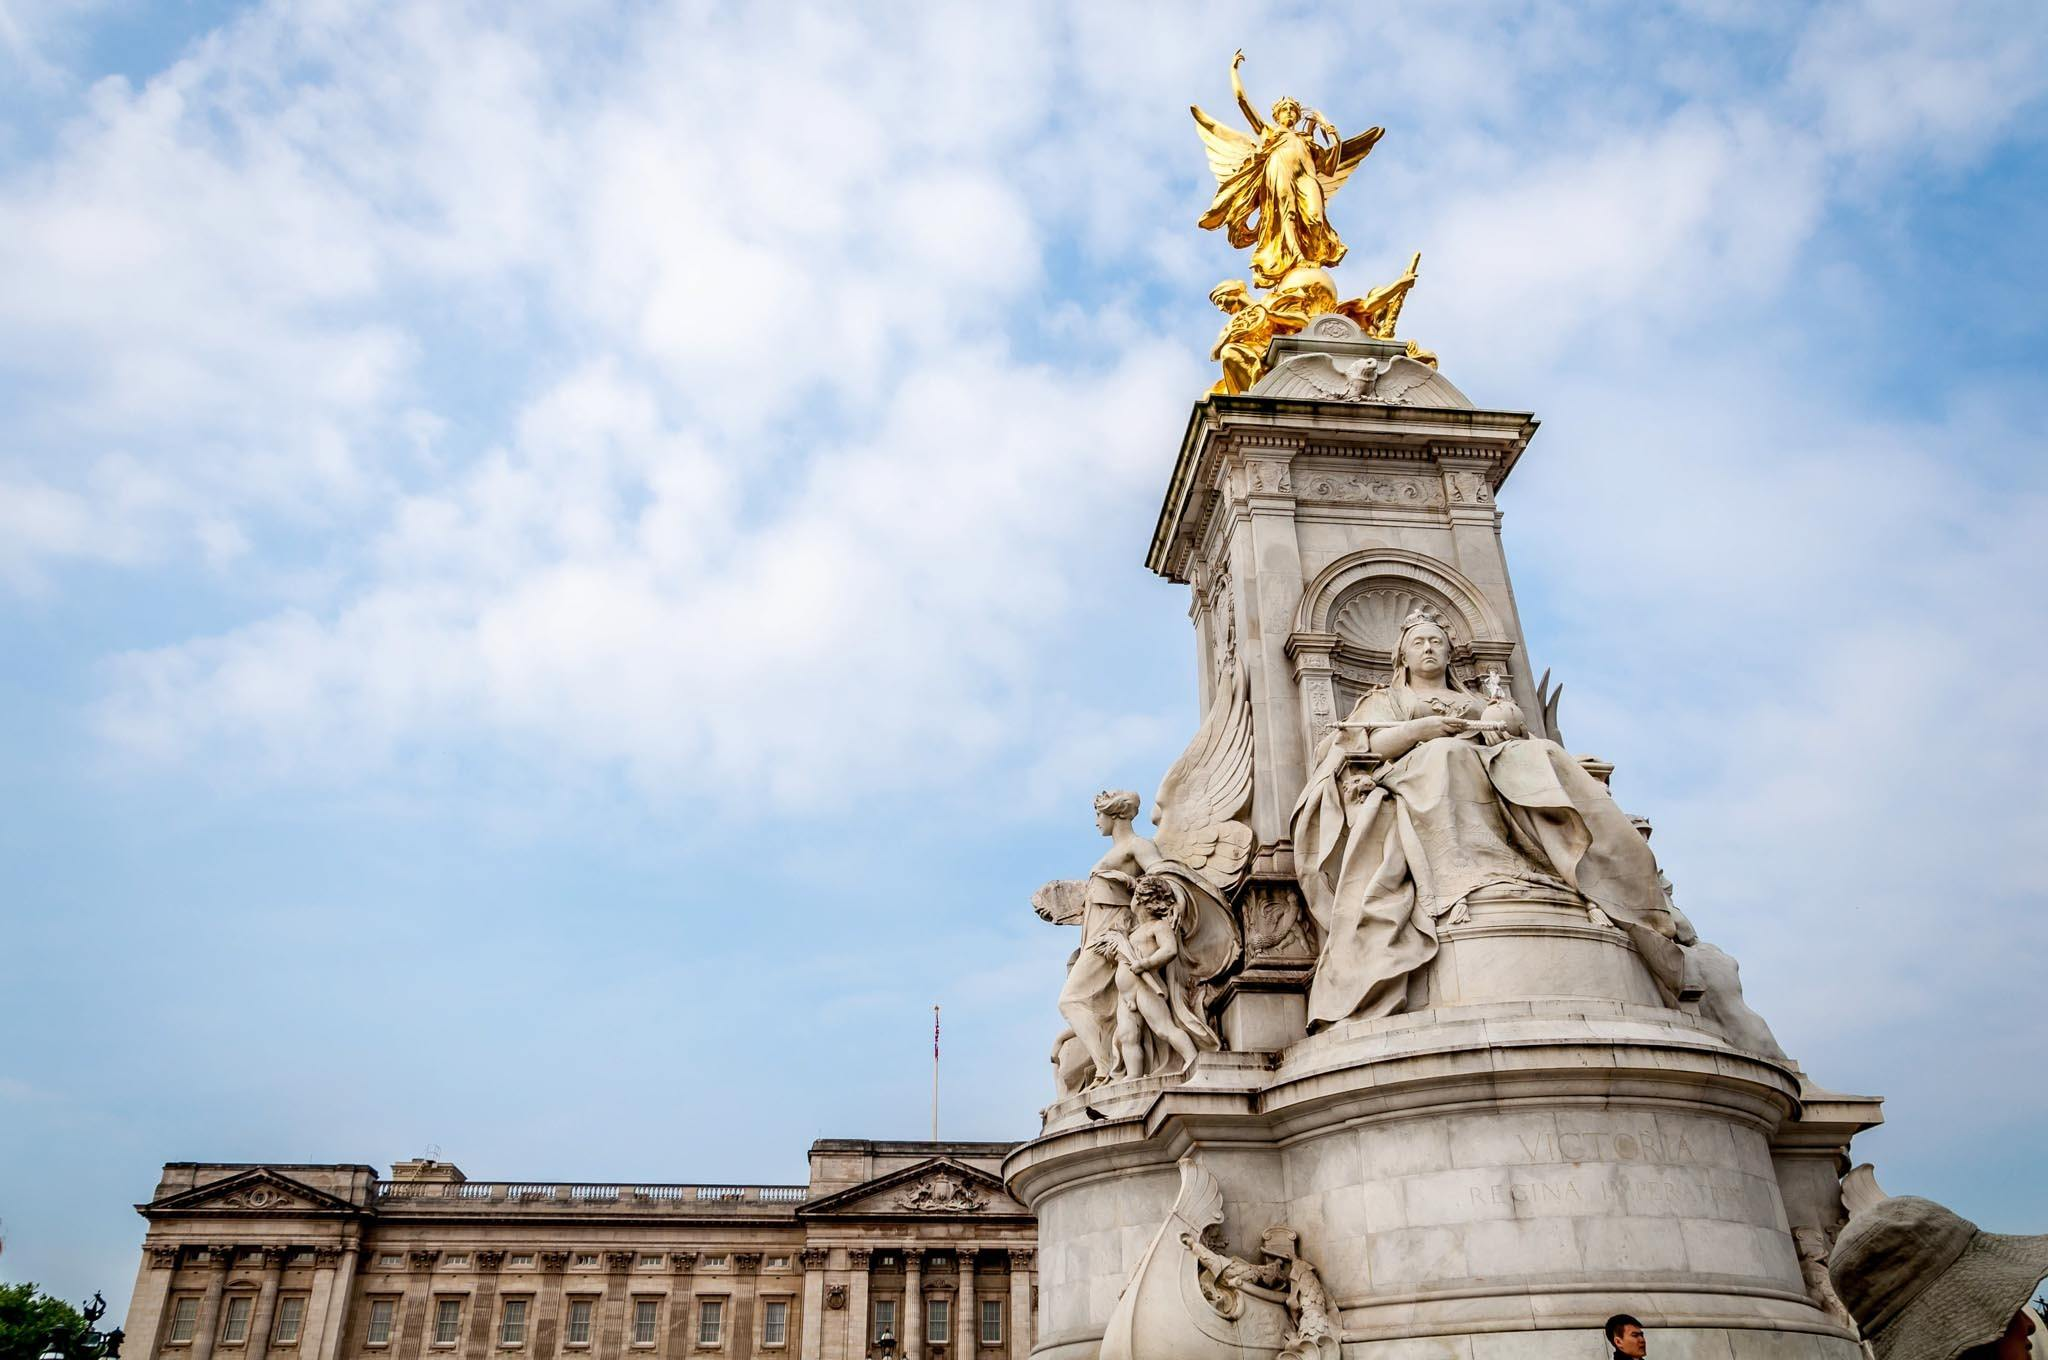 Can you leave airport during layover? You bet!  In London, leave Heathrow and head for the fountain in front of Buckingham Palace, which plays host to thousands of tourists every day.  Once you've taken in the Palace, turn and walk down The Mall behind you.